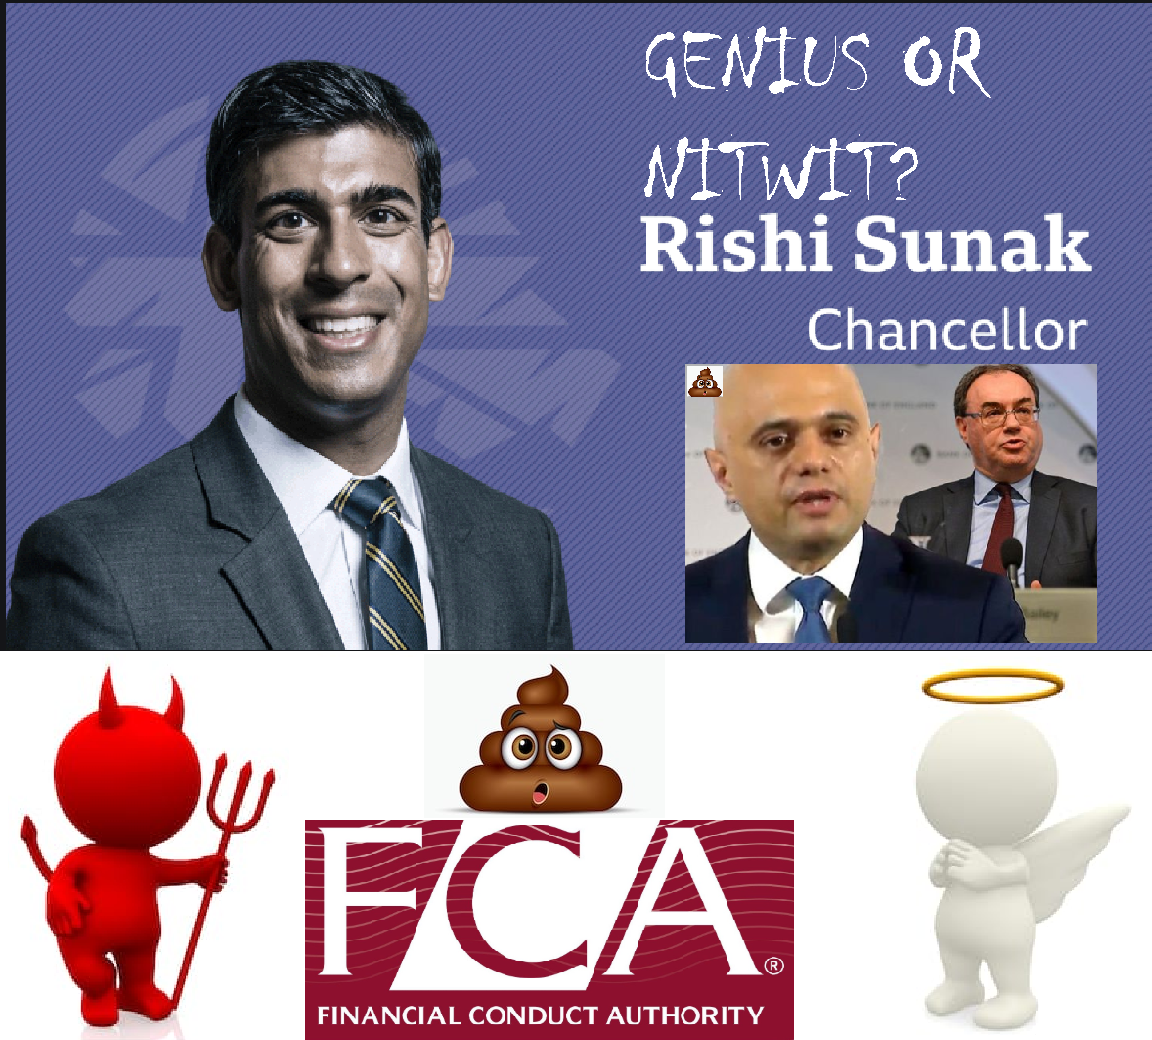 Rishi Sunak - genius or nitwit as the new chancellor?